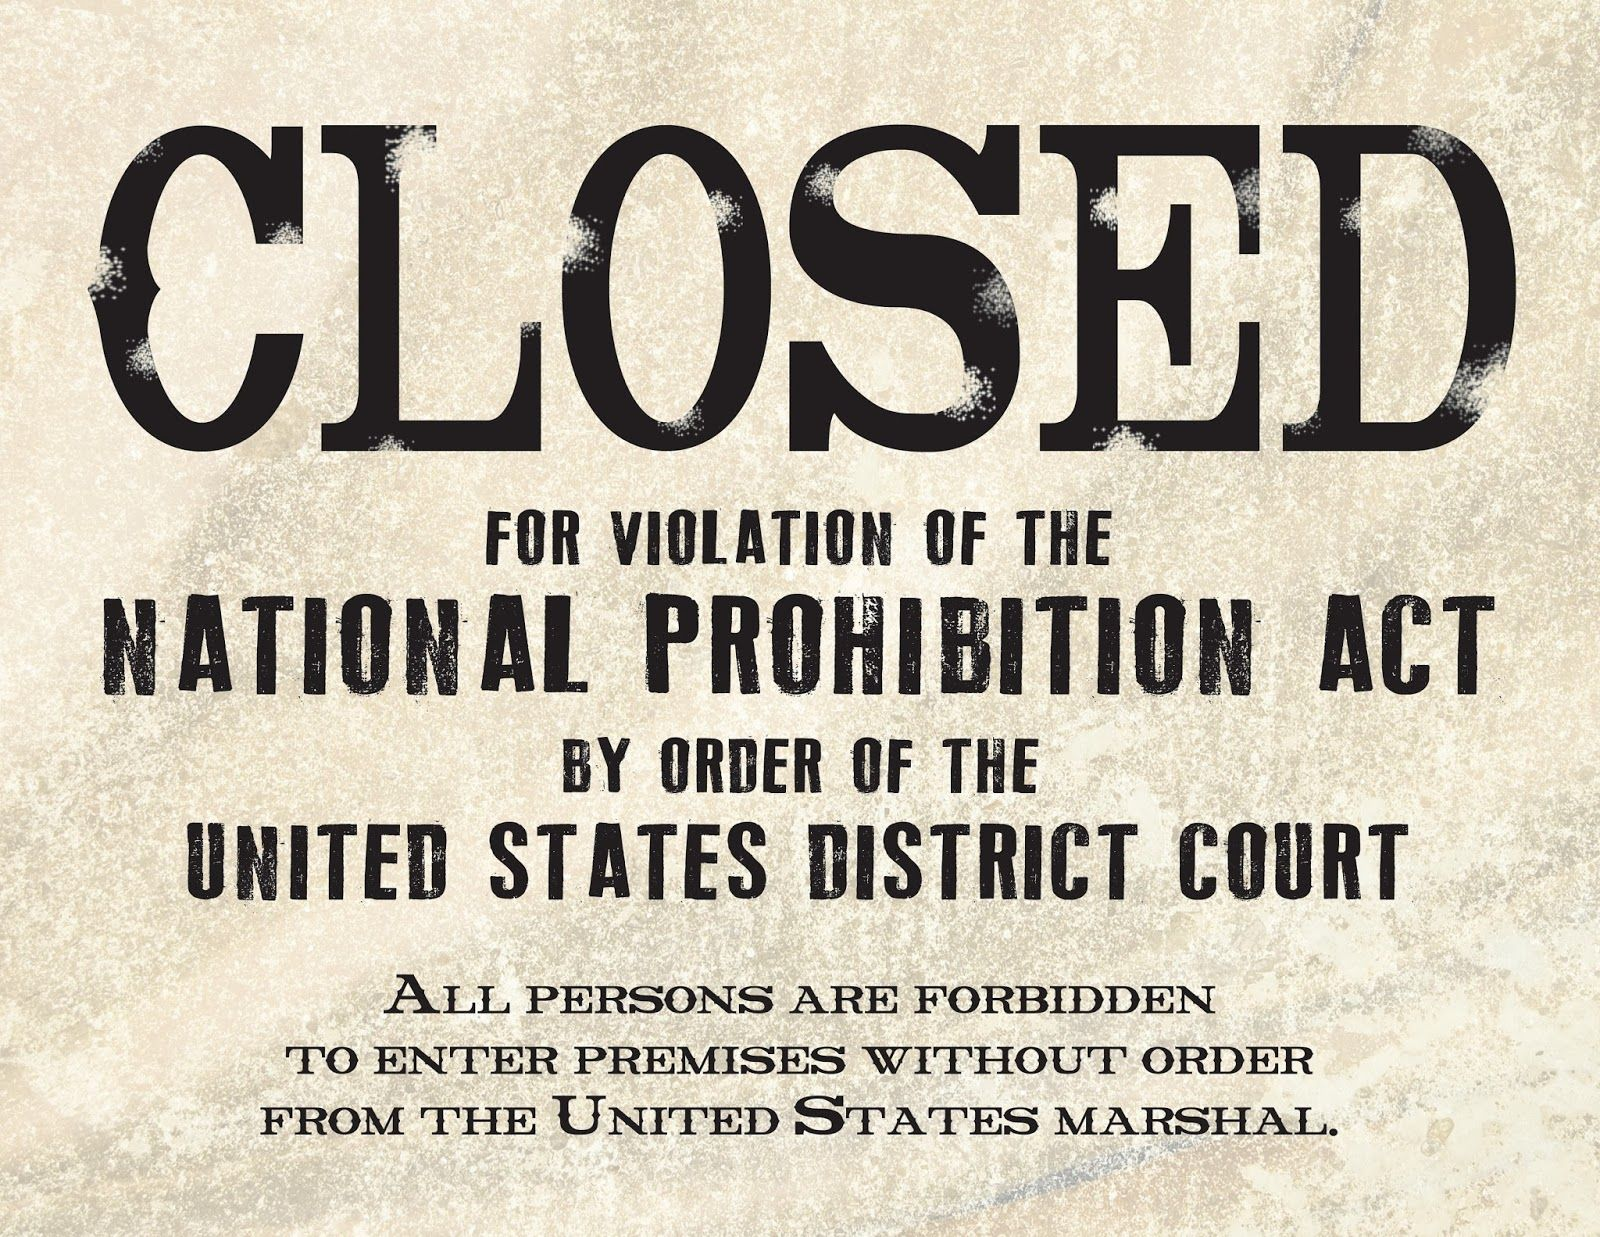 prohibition in the 1920s essay